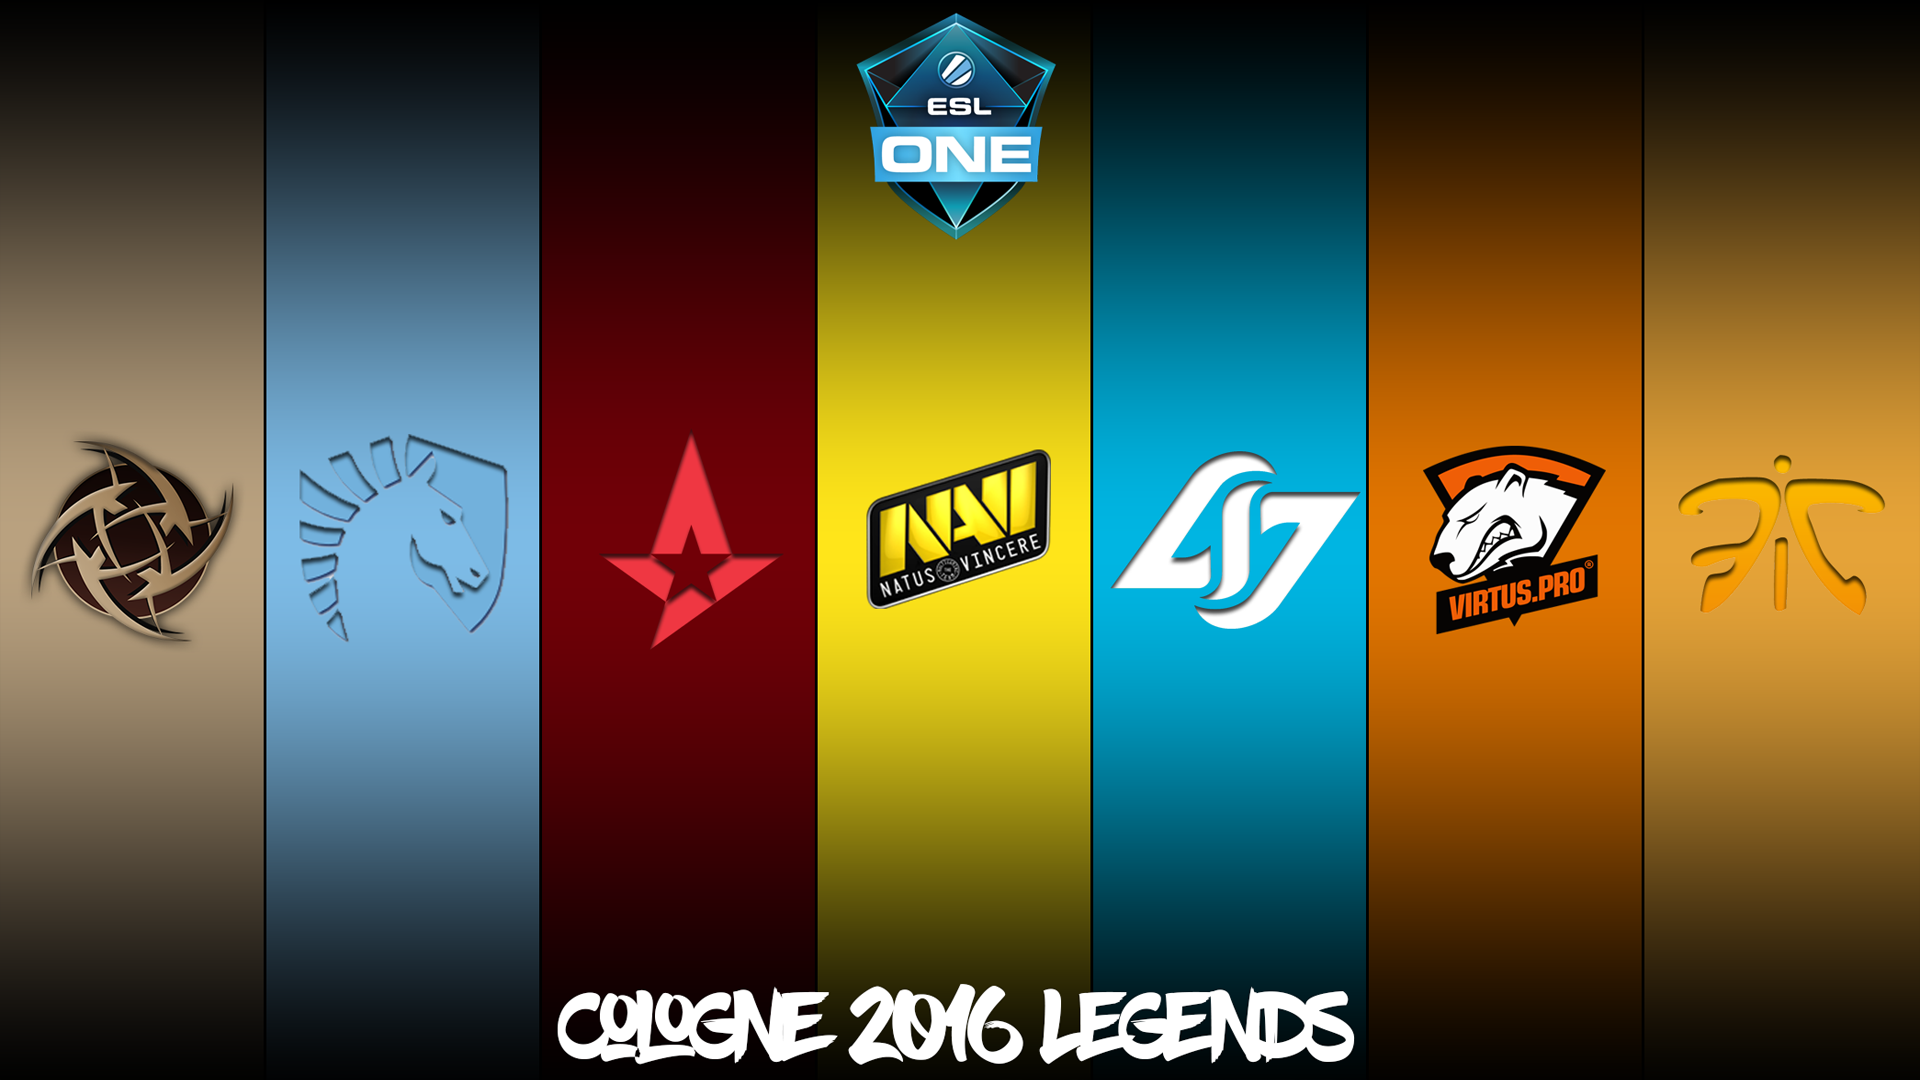 Mlg Hd Wallpaper Cologne 2016 Legends Cs Go Wallpapers And Backgrounds